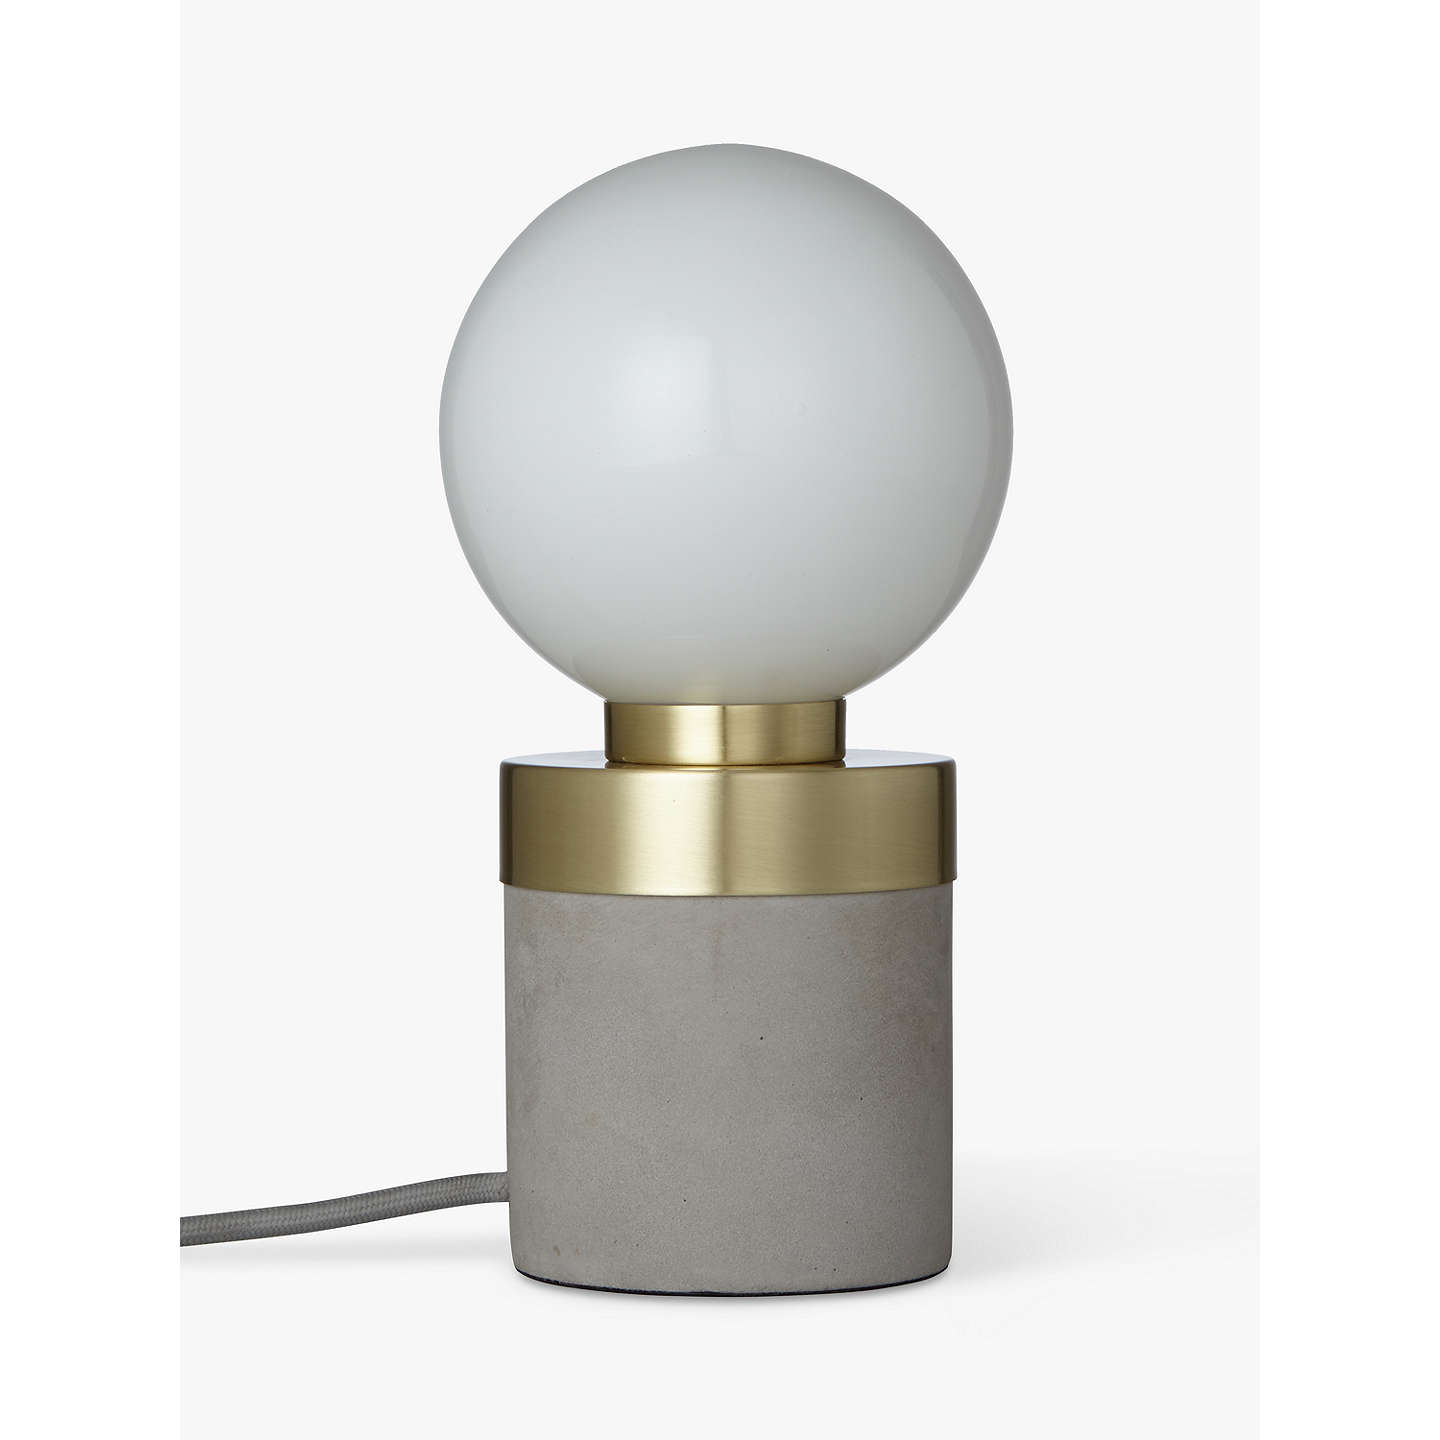 BuyDesign Project by John Lewis No.046 Lamp, Opal Glass/Concrete Online at johnlewis.com